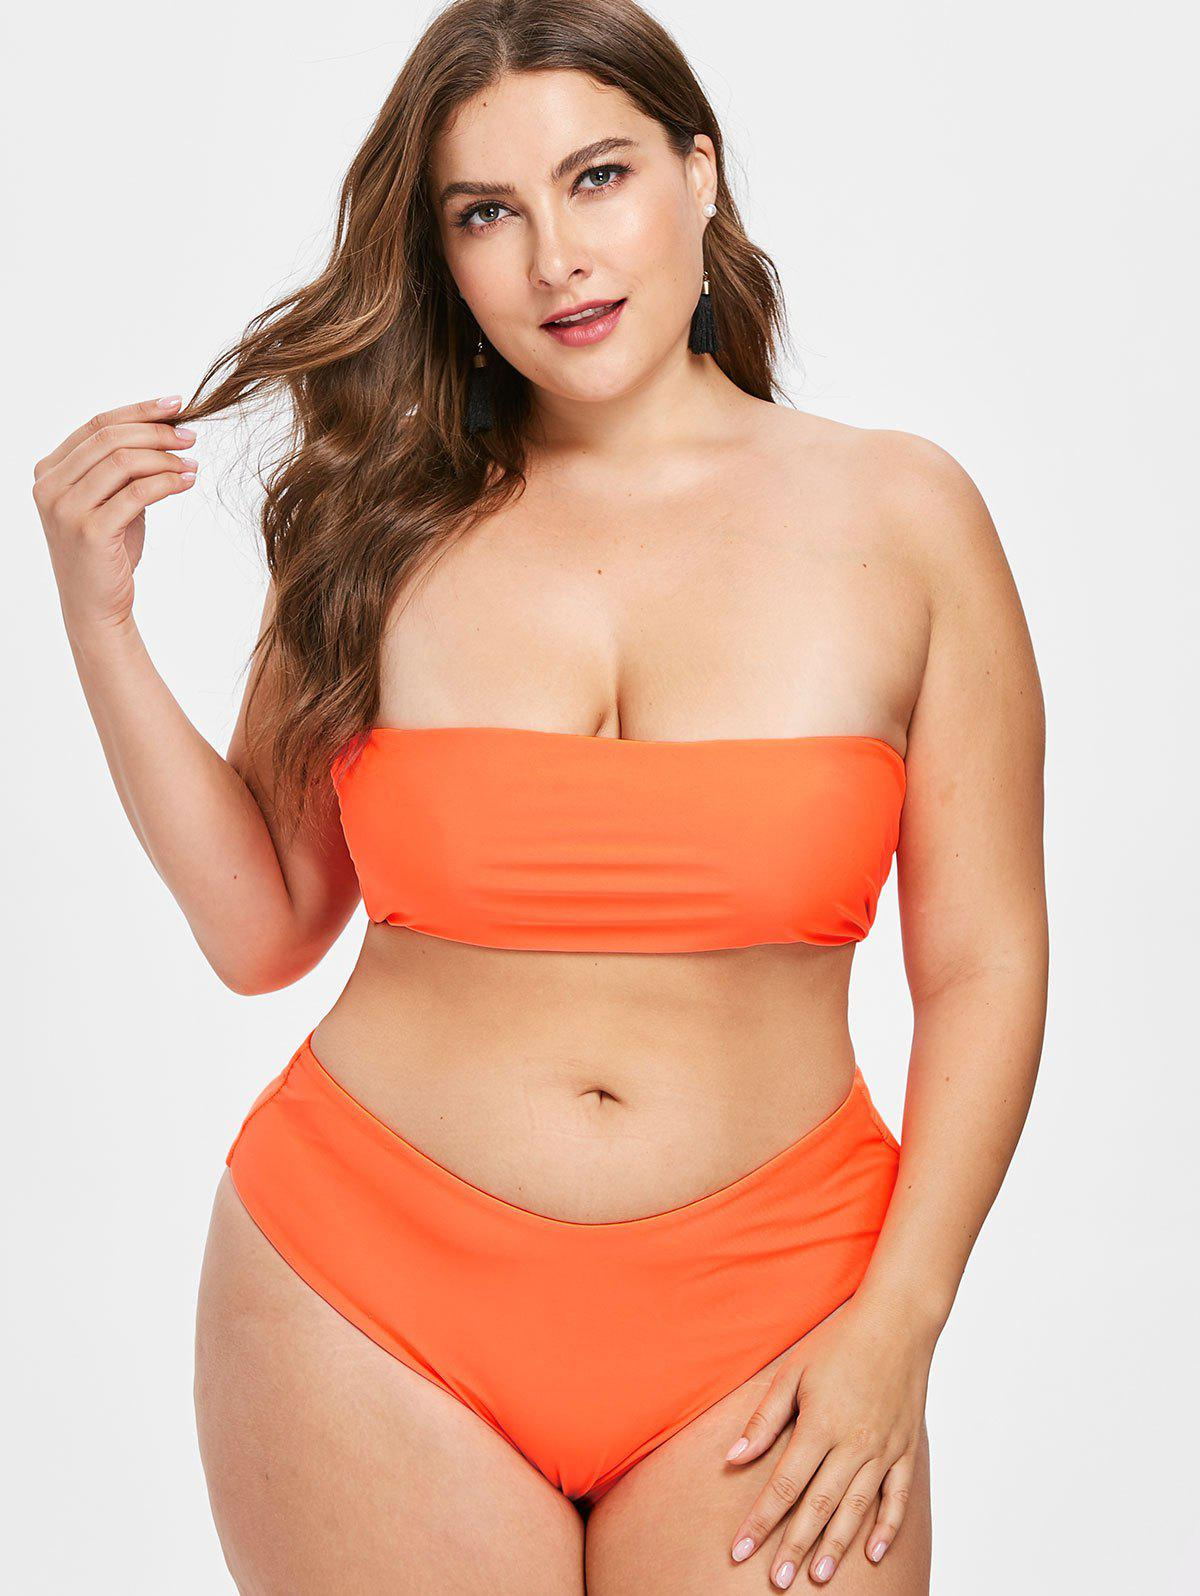 Ensemble de Bikini Sans Bretelle de Grande Taille Orange 3X